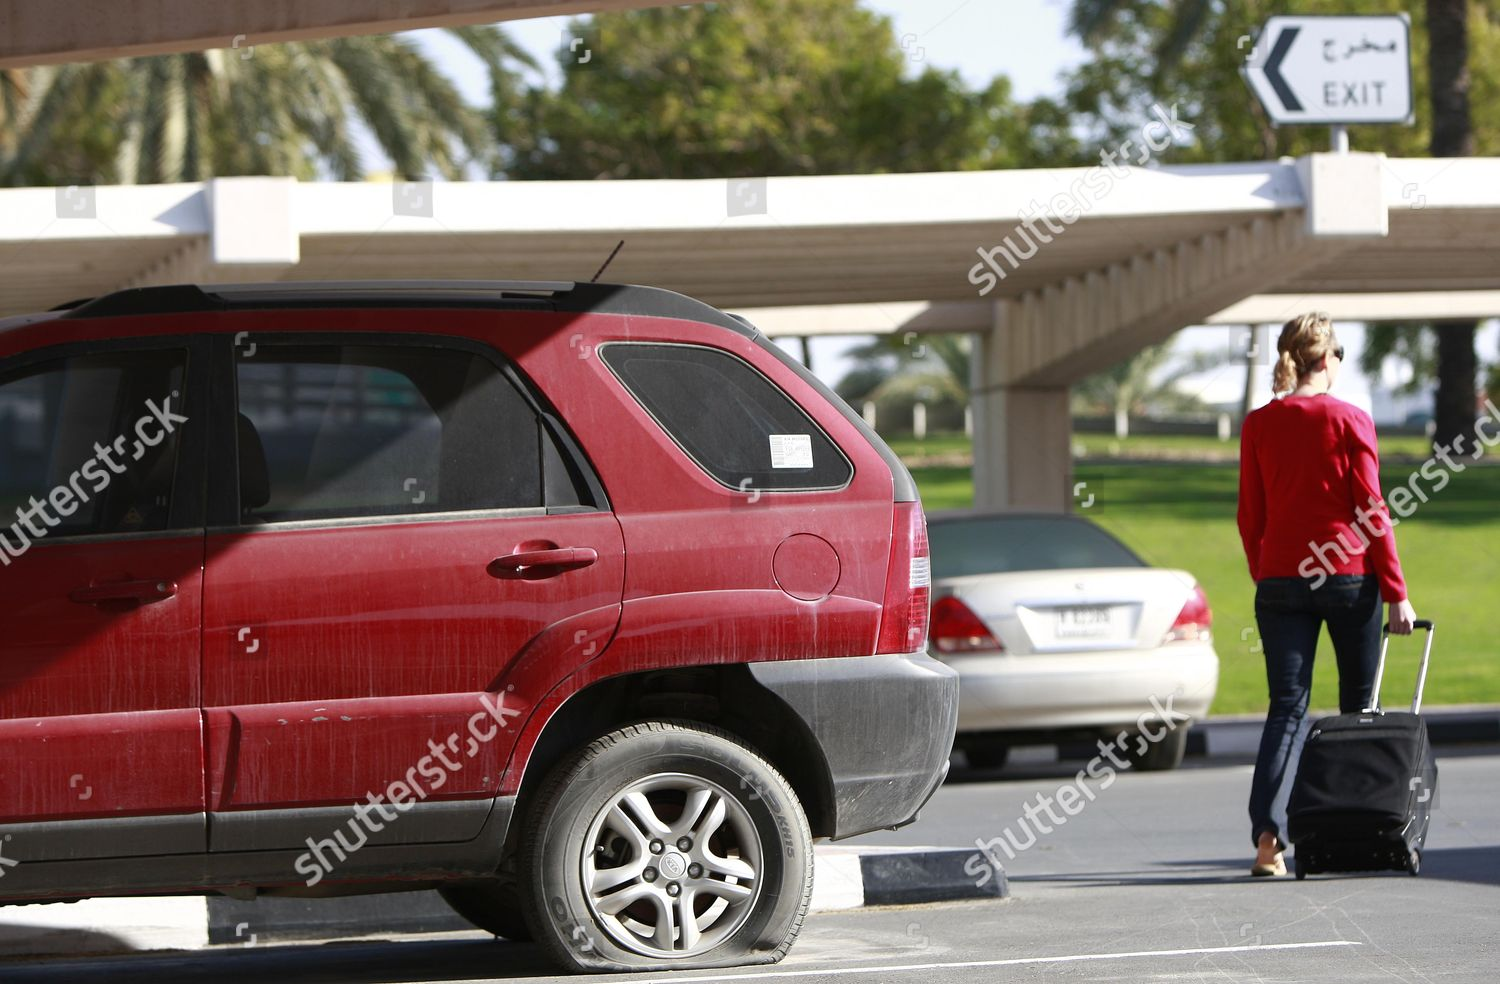 4x4 Car Abandoned Dubai International Airport 4 Editorial Stock Photo Stock Image Shutterstock